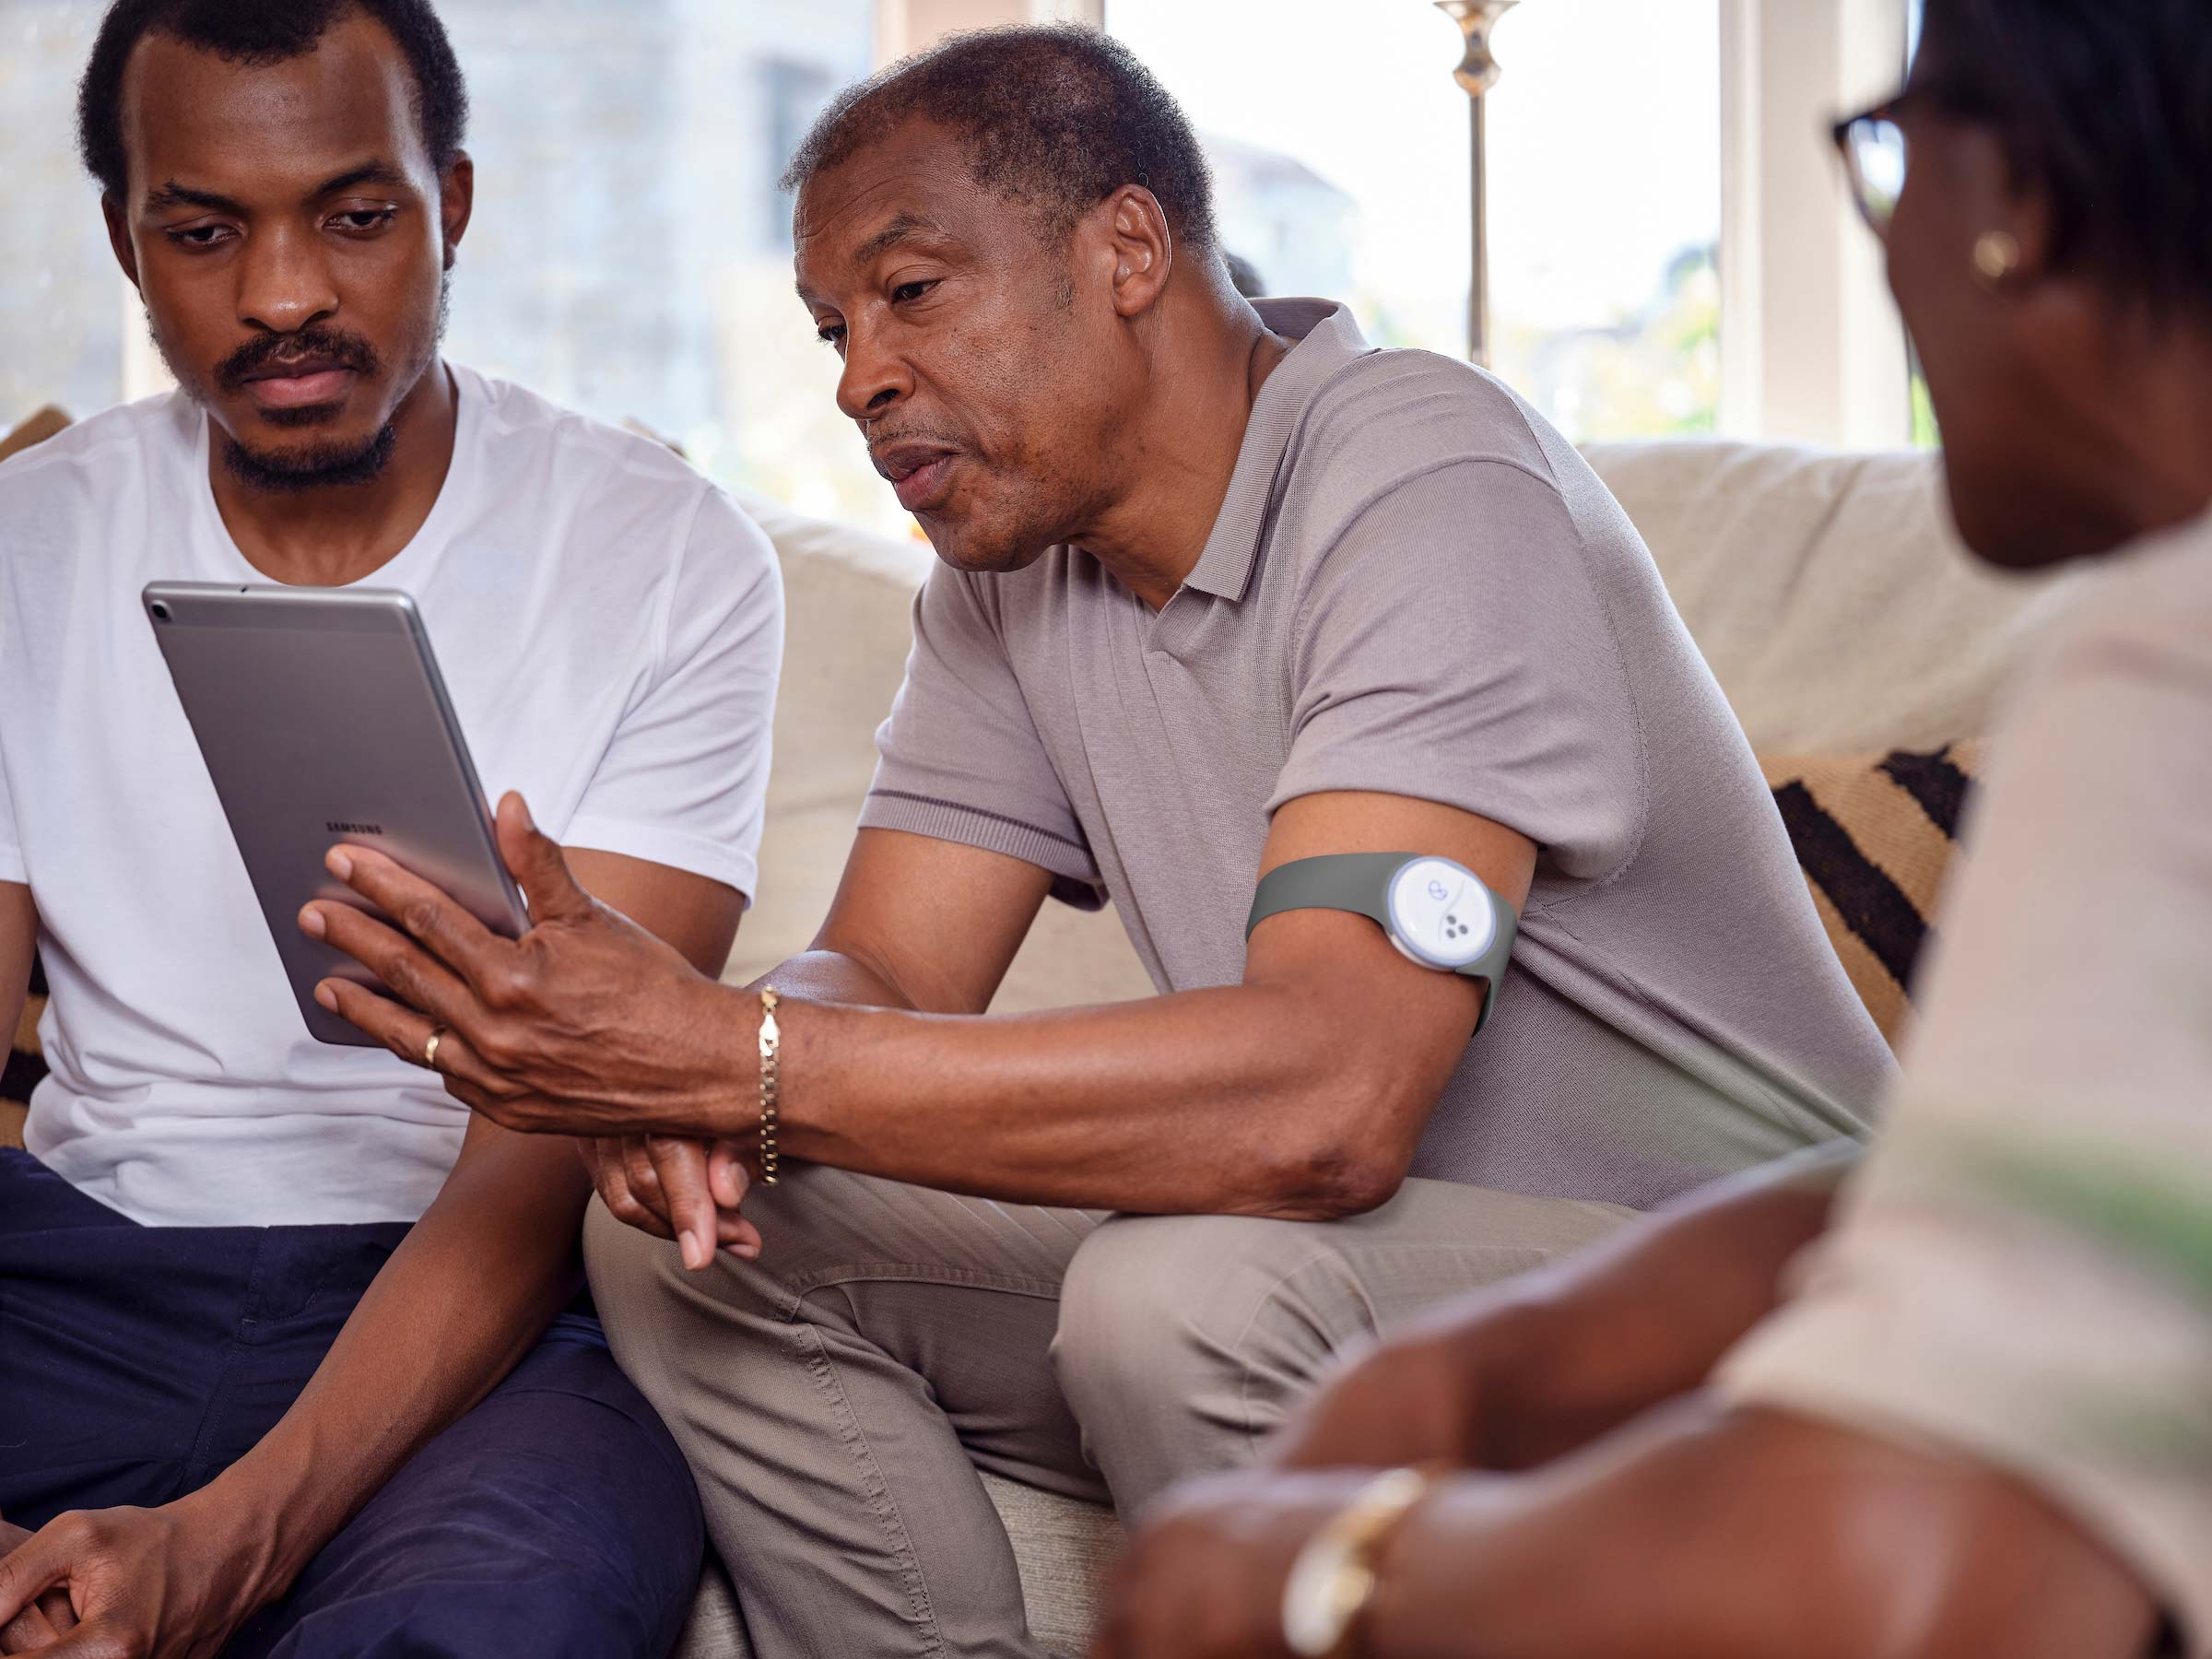 Current Health Increases Home Care Services with Workpath and ScriptDrop Partnerships